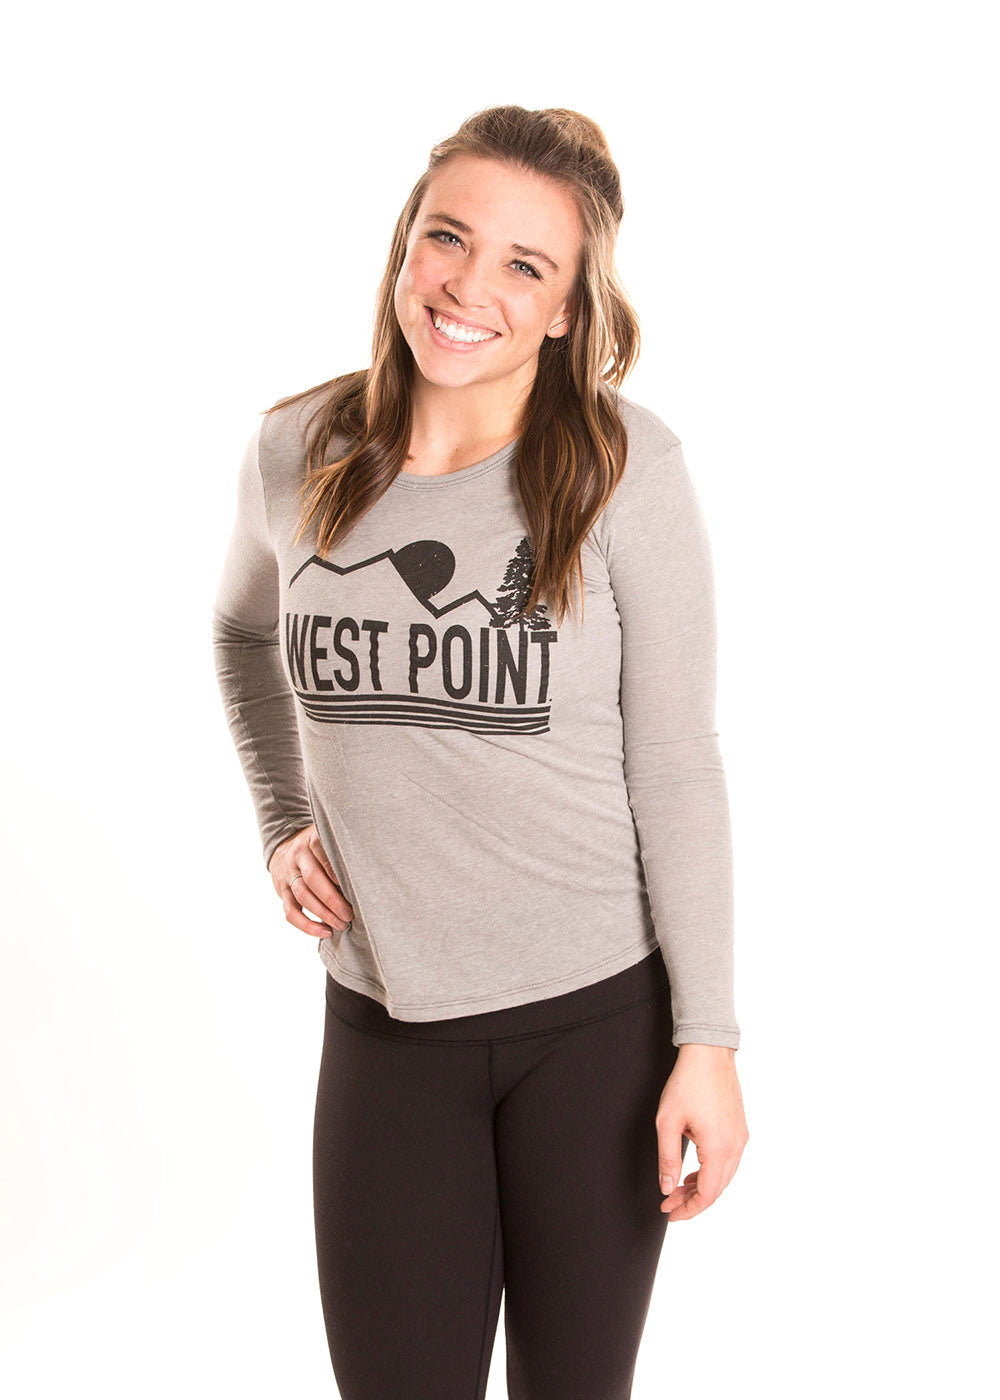 ARMY - WEST POINT Black Knights Women's Long Sleeve Tee